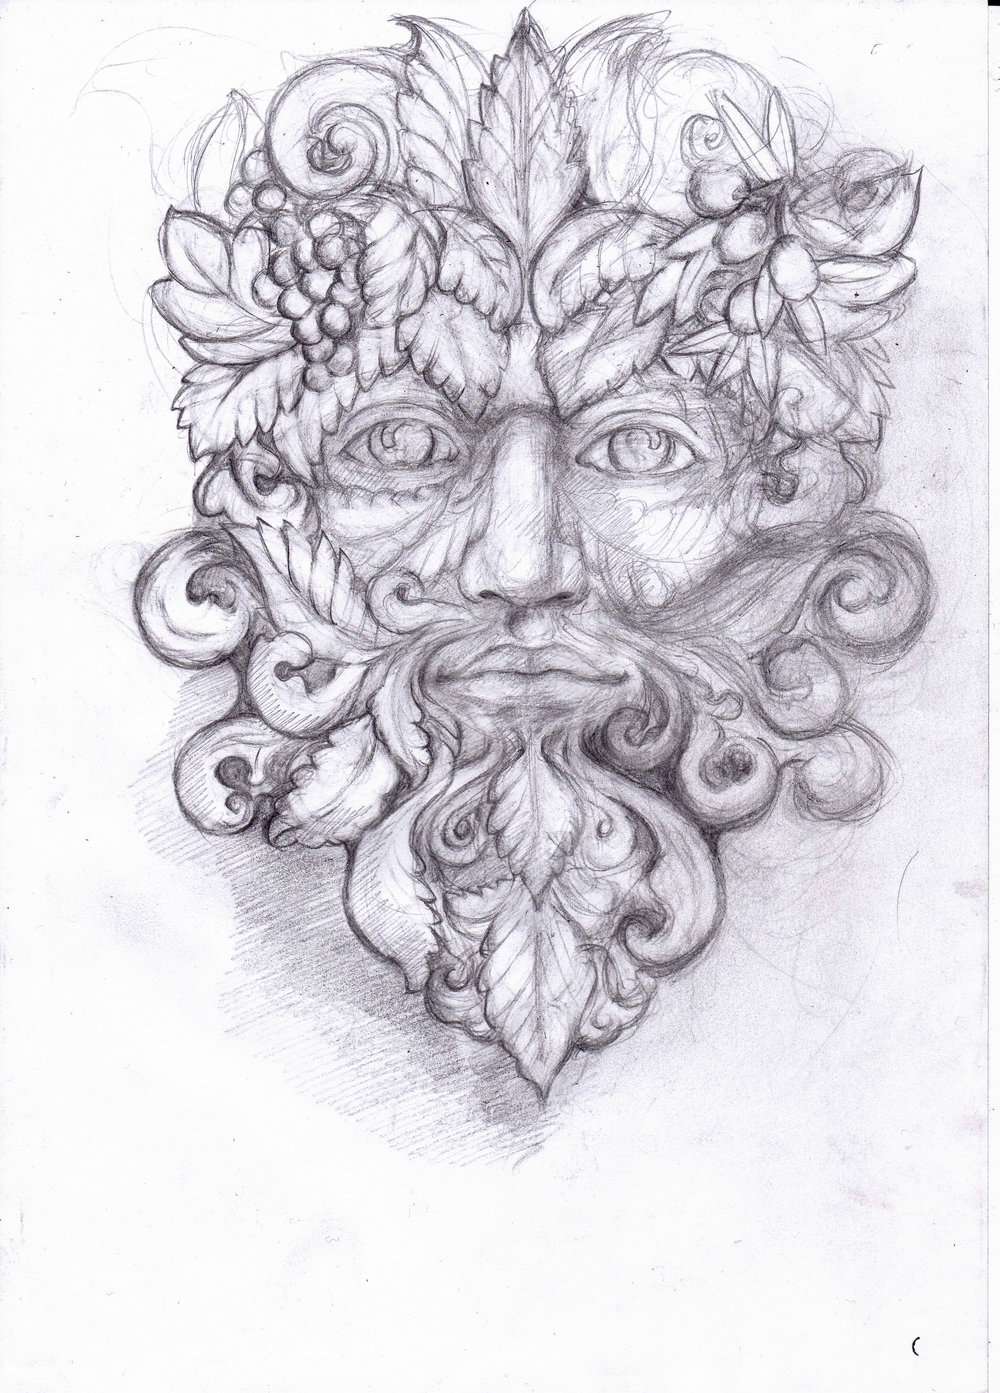 As an added ornamental feature I was commissioned to design a sculpture of the Green Man, symbolizing growth and rebirth, which would then be cast in bronze and mounted on the central keystone of the arch. I began with a pencil sketch that was approved by the client after a couple adjustments.